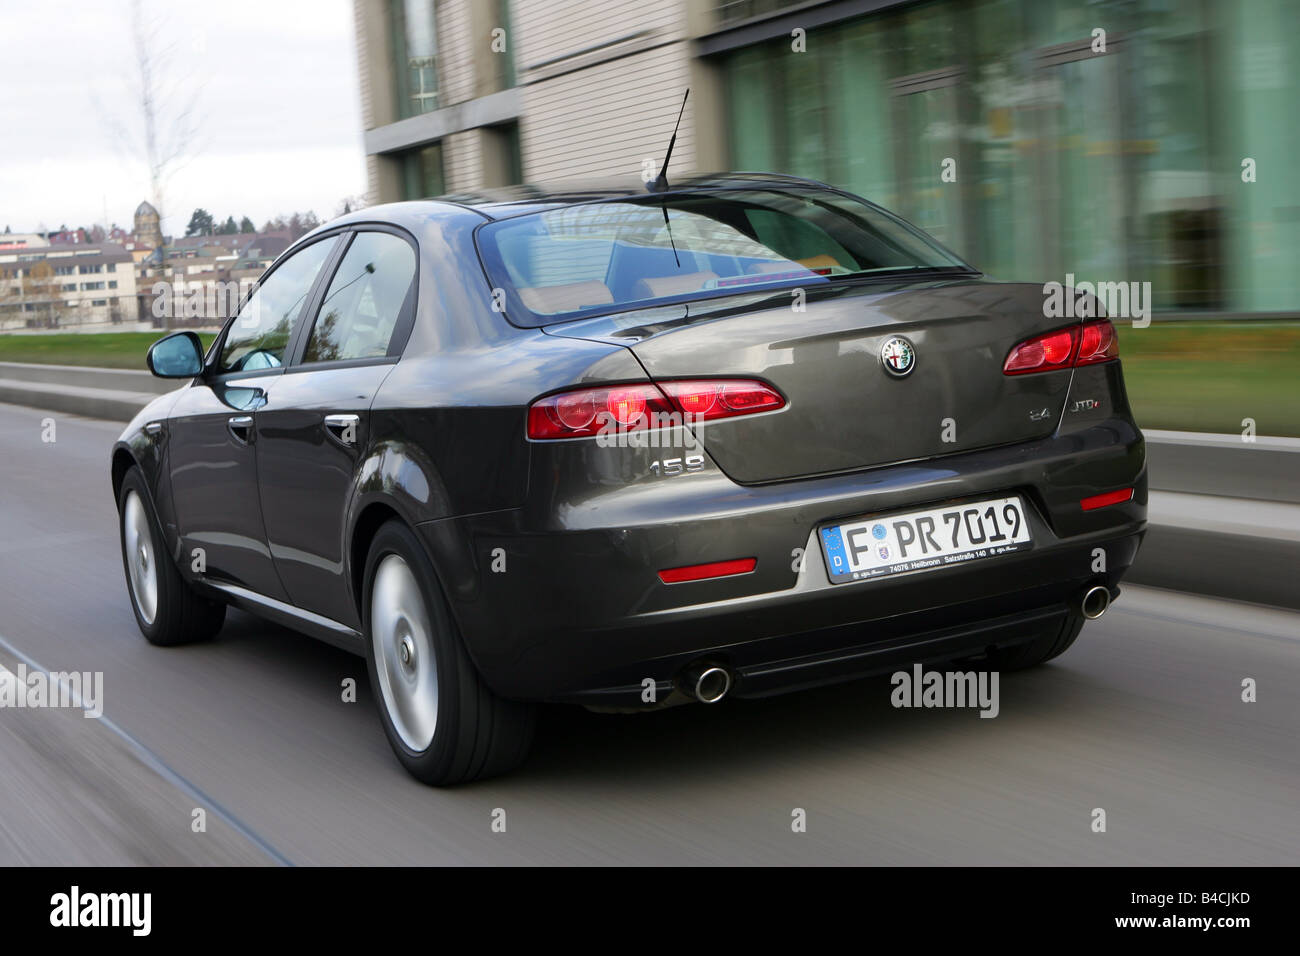 alfa romeo 159 2 4 jtdm 20v model year 2005 anthracite driving stock photo royalty free. Black Bedroom Furniture Sets. Home Design Ideas